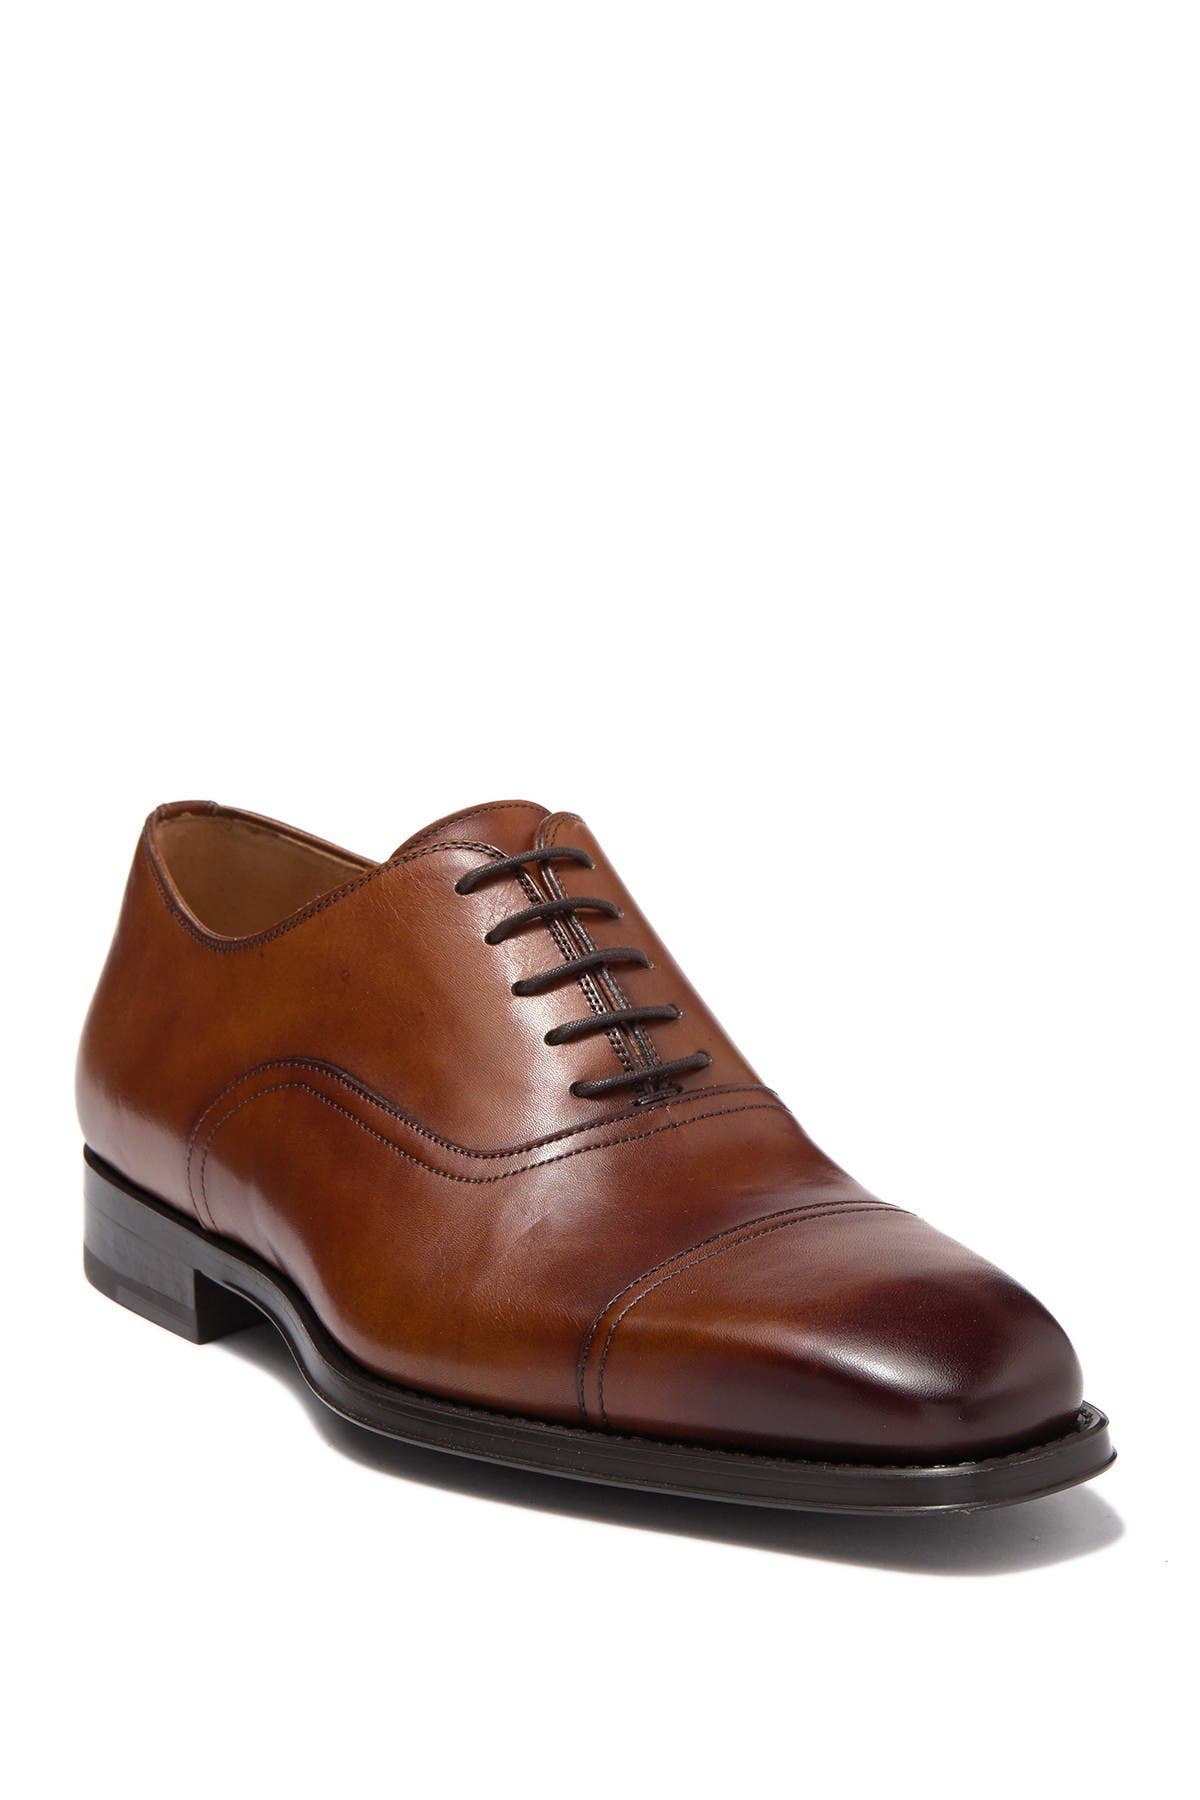 Magnanni   Lucas Leather Oxford - Wide